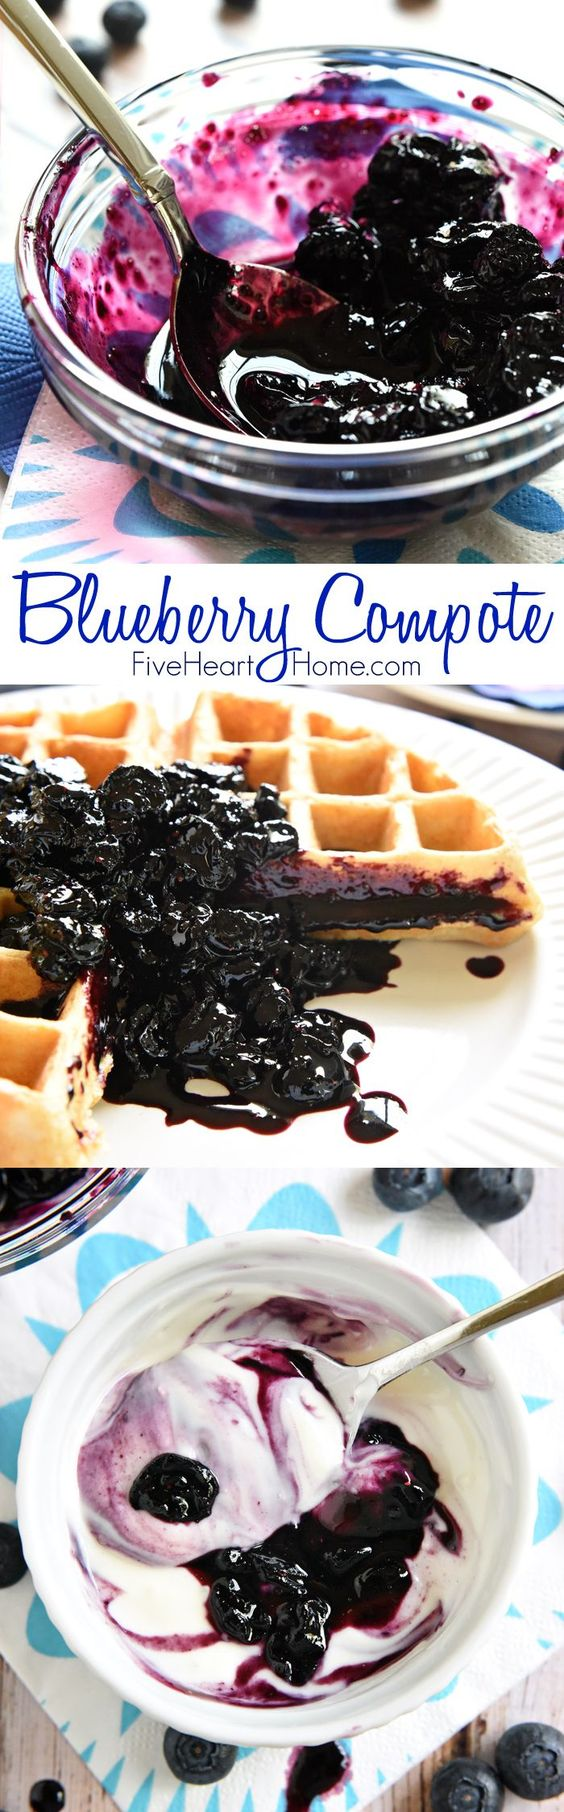 Blueberry Compote | Recipe | Blueberry Compote, Blueberries and Frozen ...